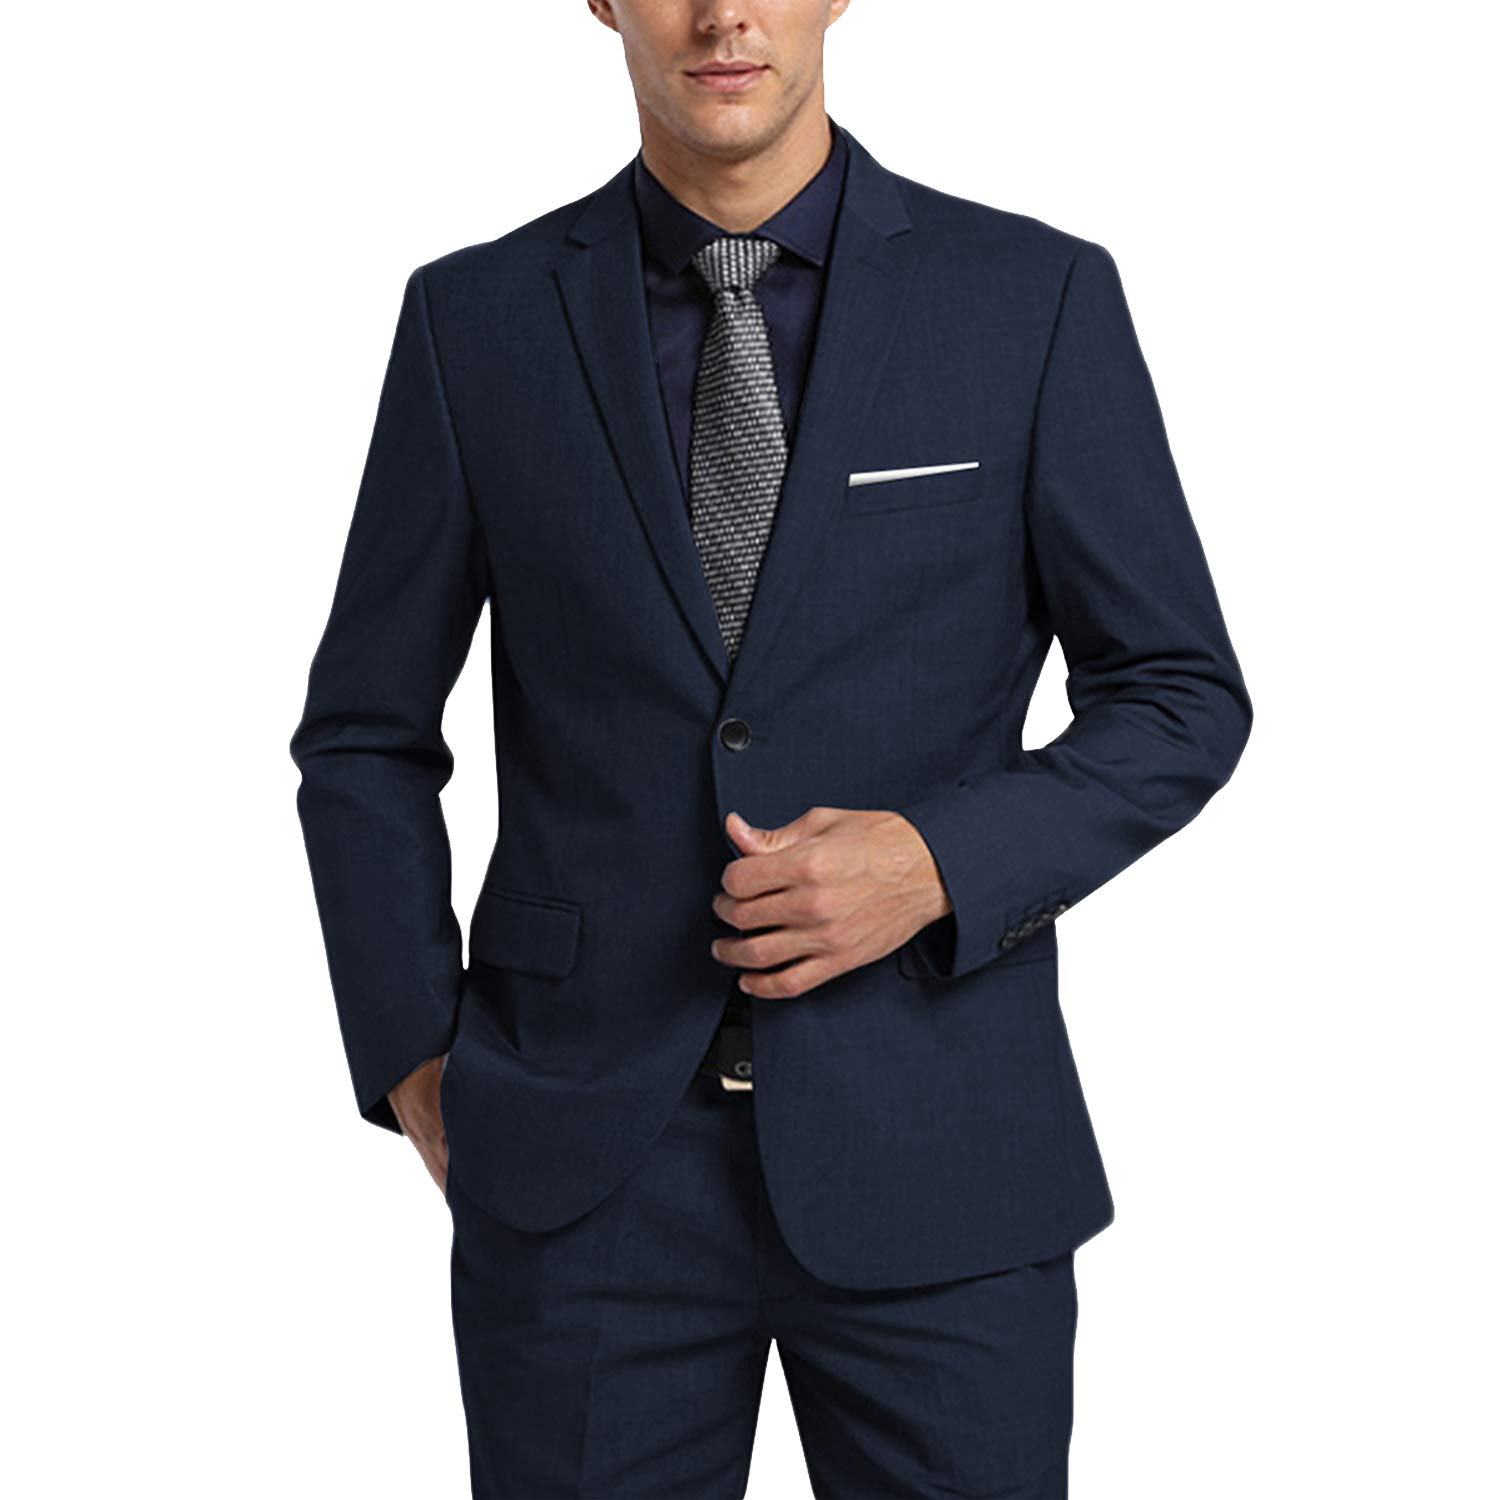 A lush suit for husband